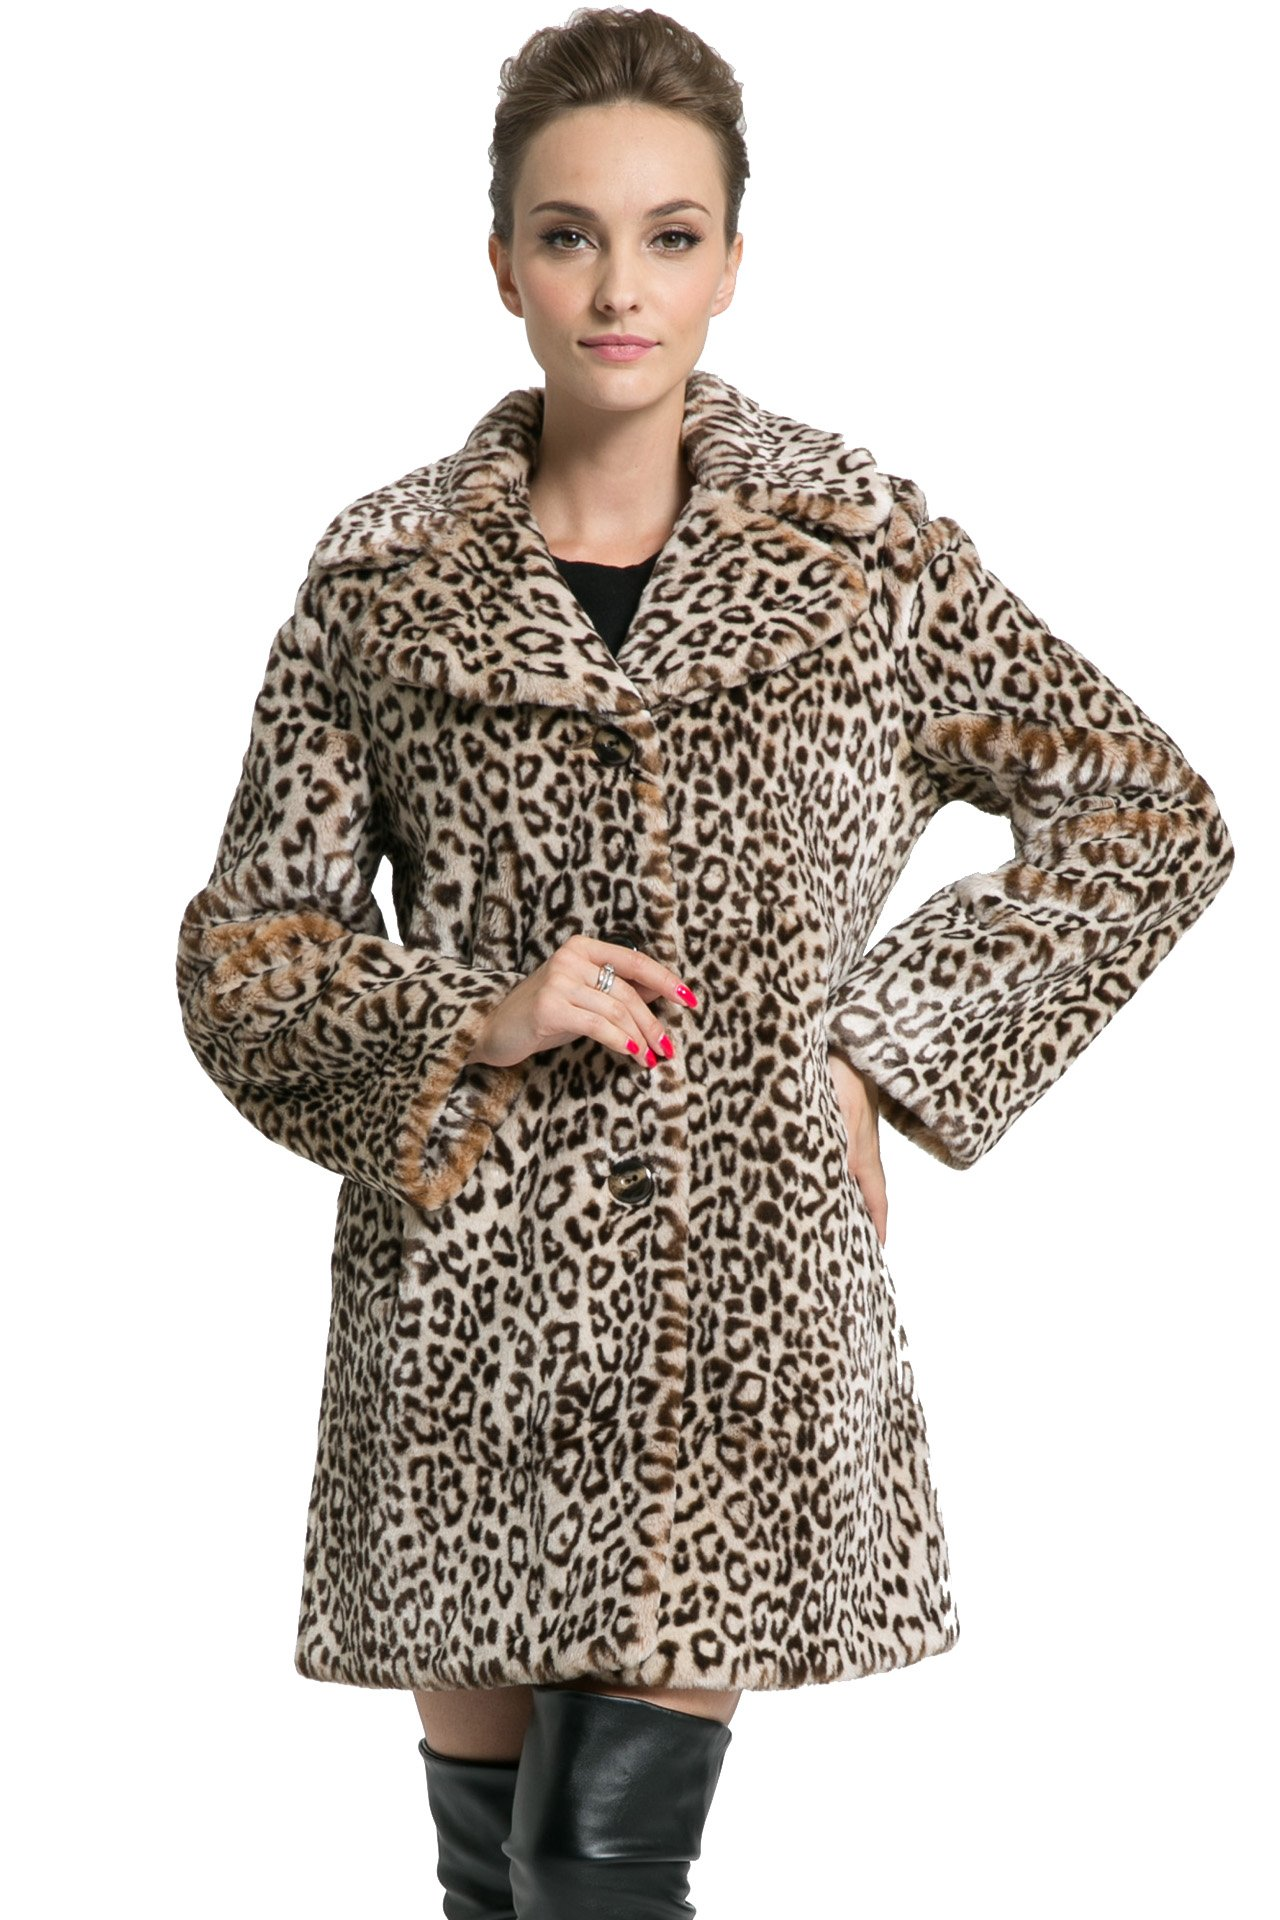 Ovonzo Women's New Style Middle Length Leopard Faux Fur Coat Brown Size XL